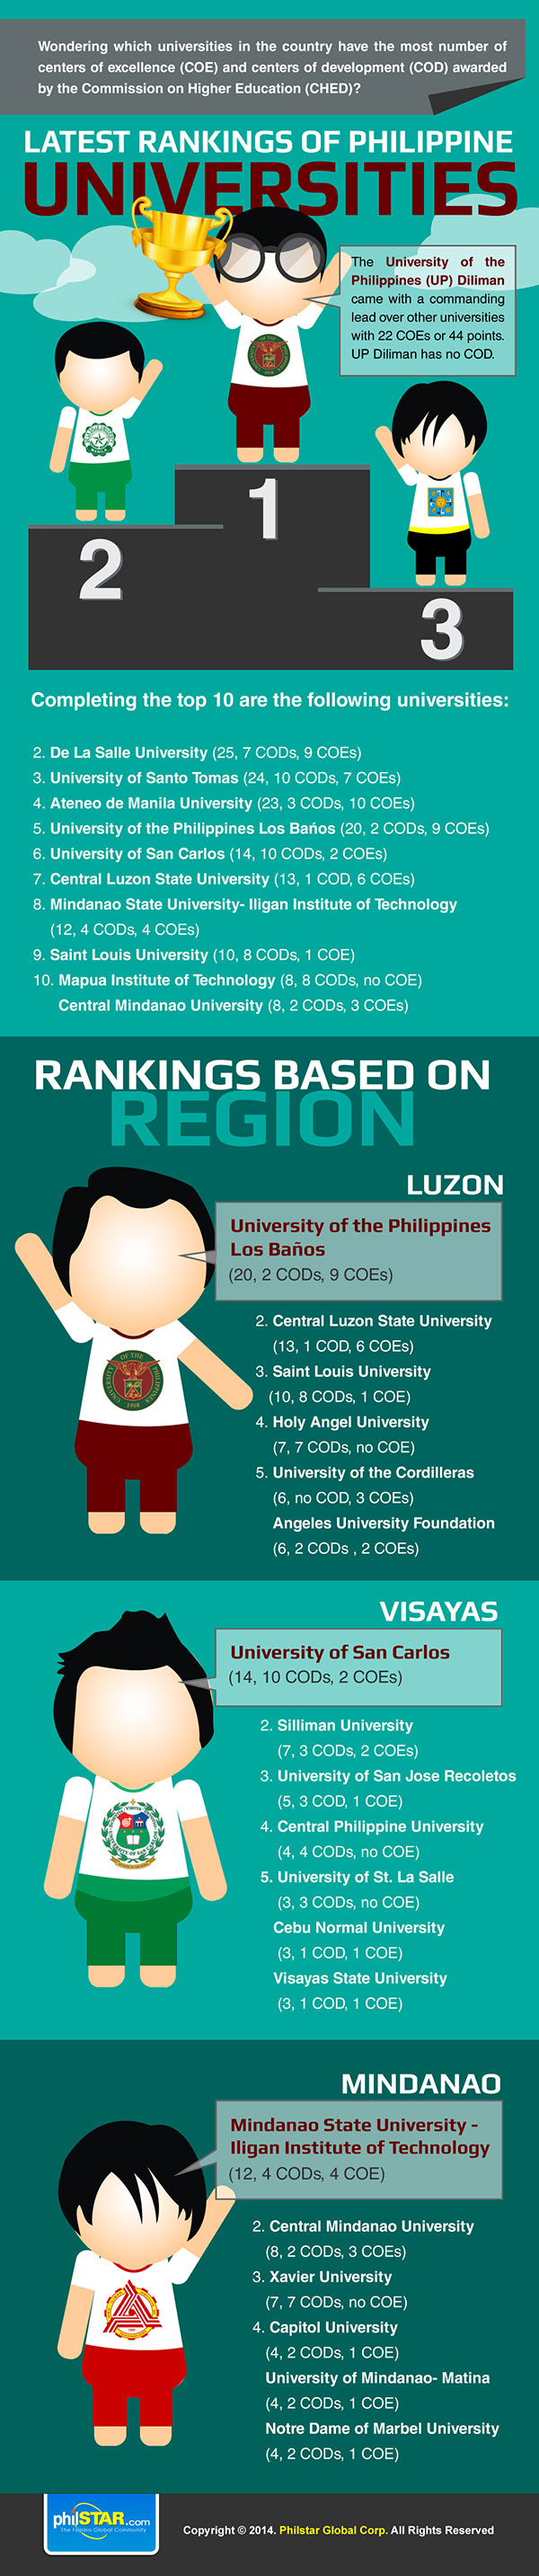 Rankings of Philippine Universities